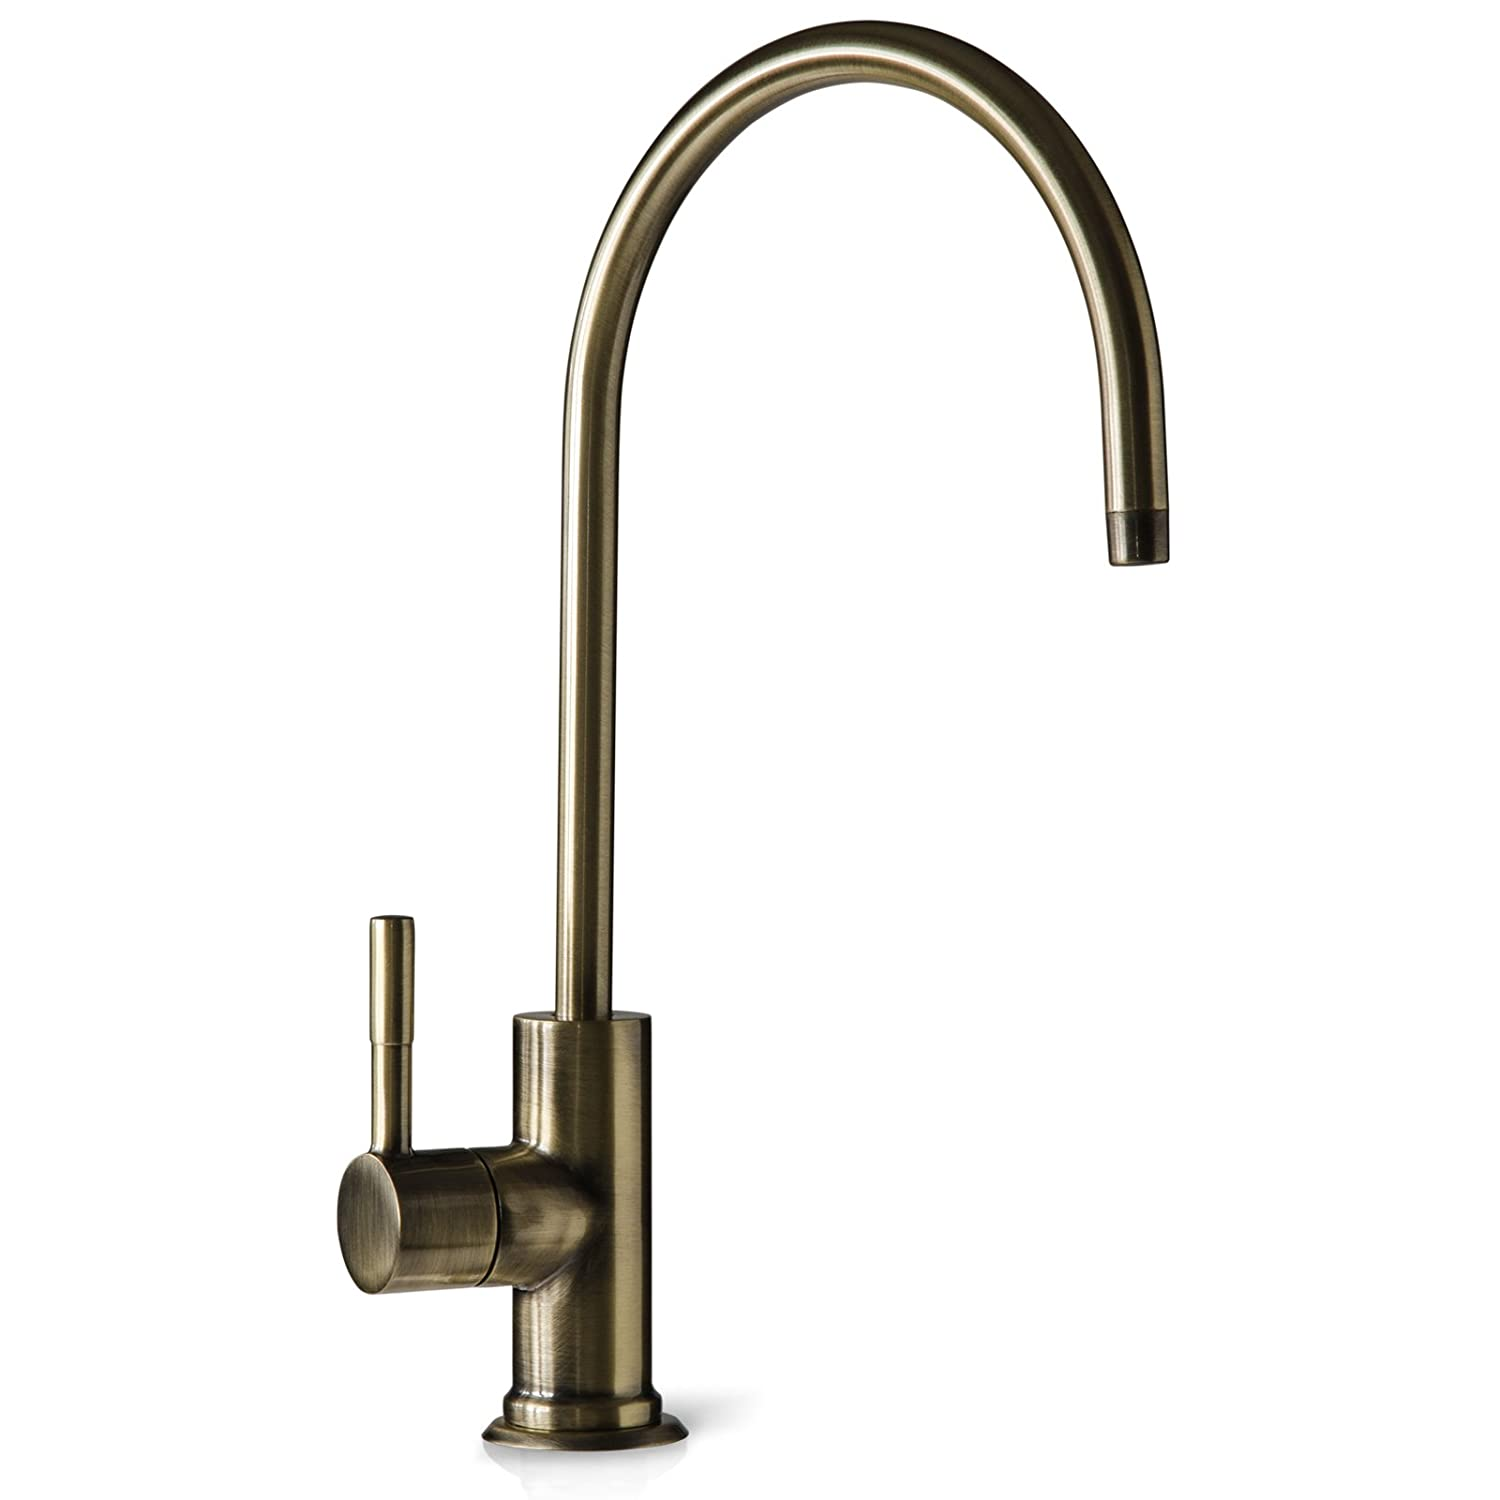 iSpring GA1-AB Kitchen Bar Sink Lead-Free Drinking Water Faucet, Reverse Osmosis Faucet, Contemporary Style, High Spout, Antique Brass Finish